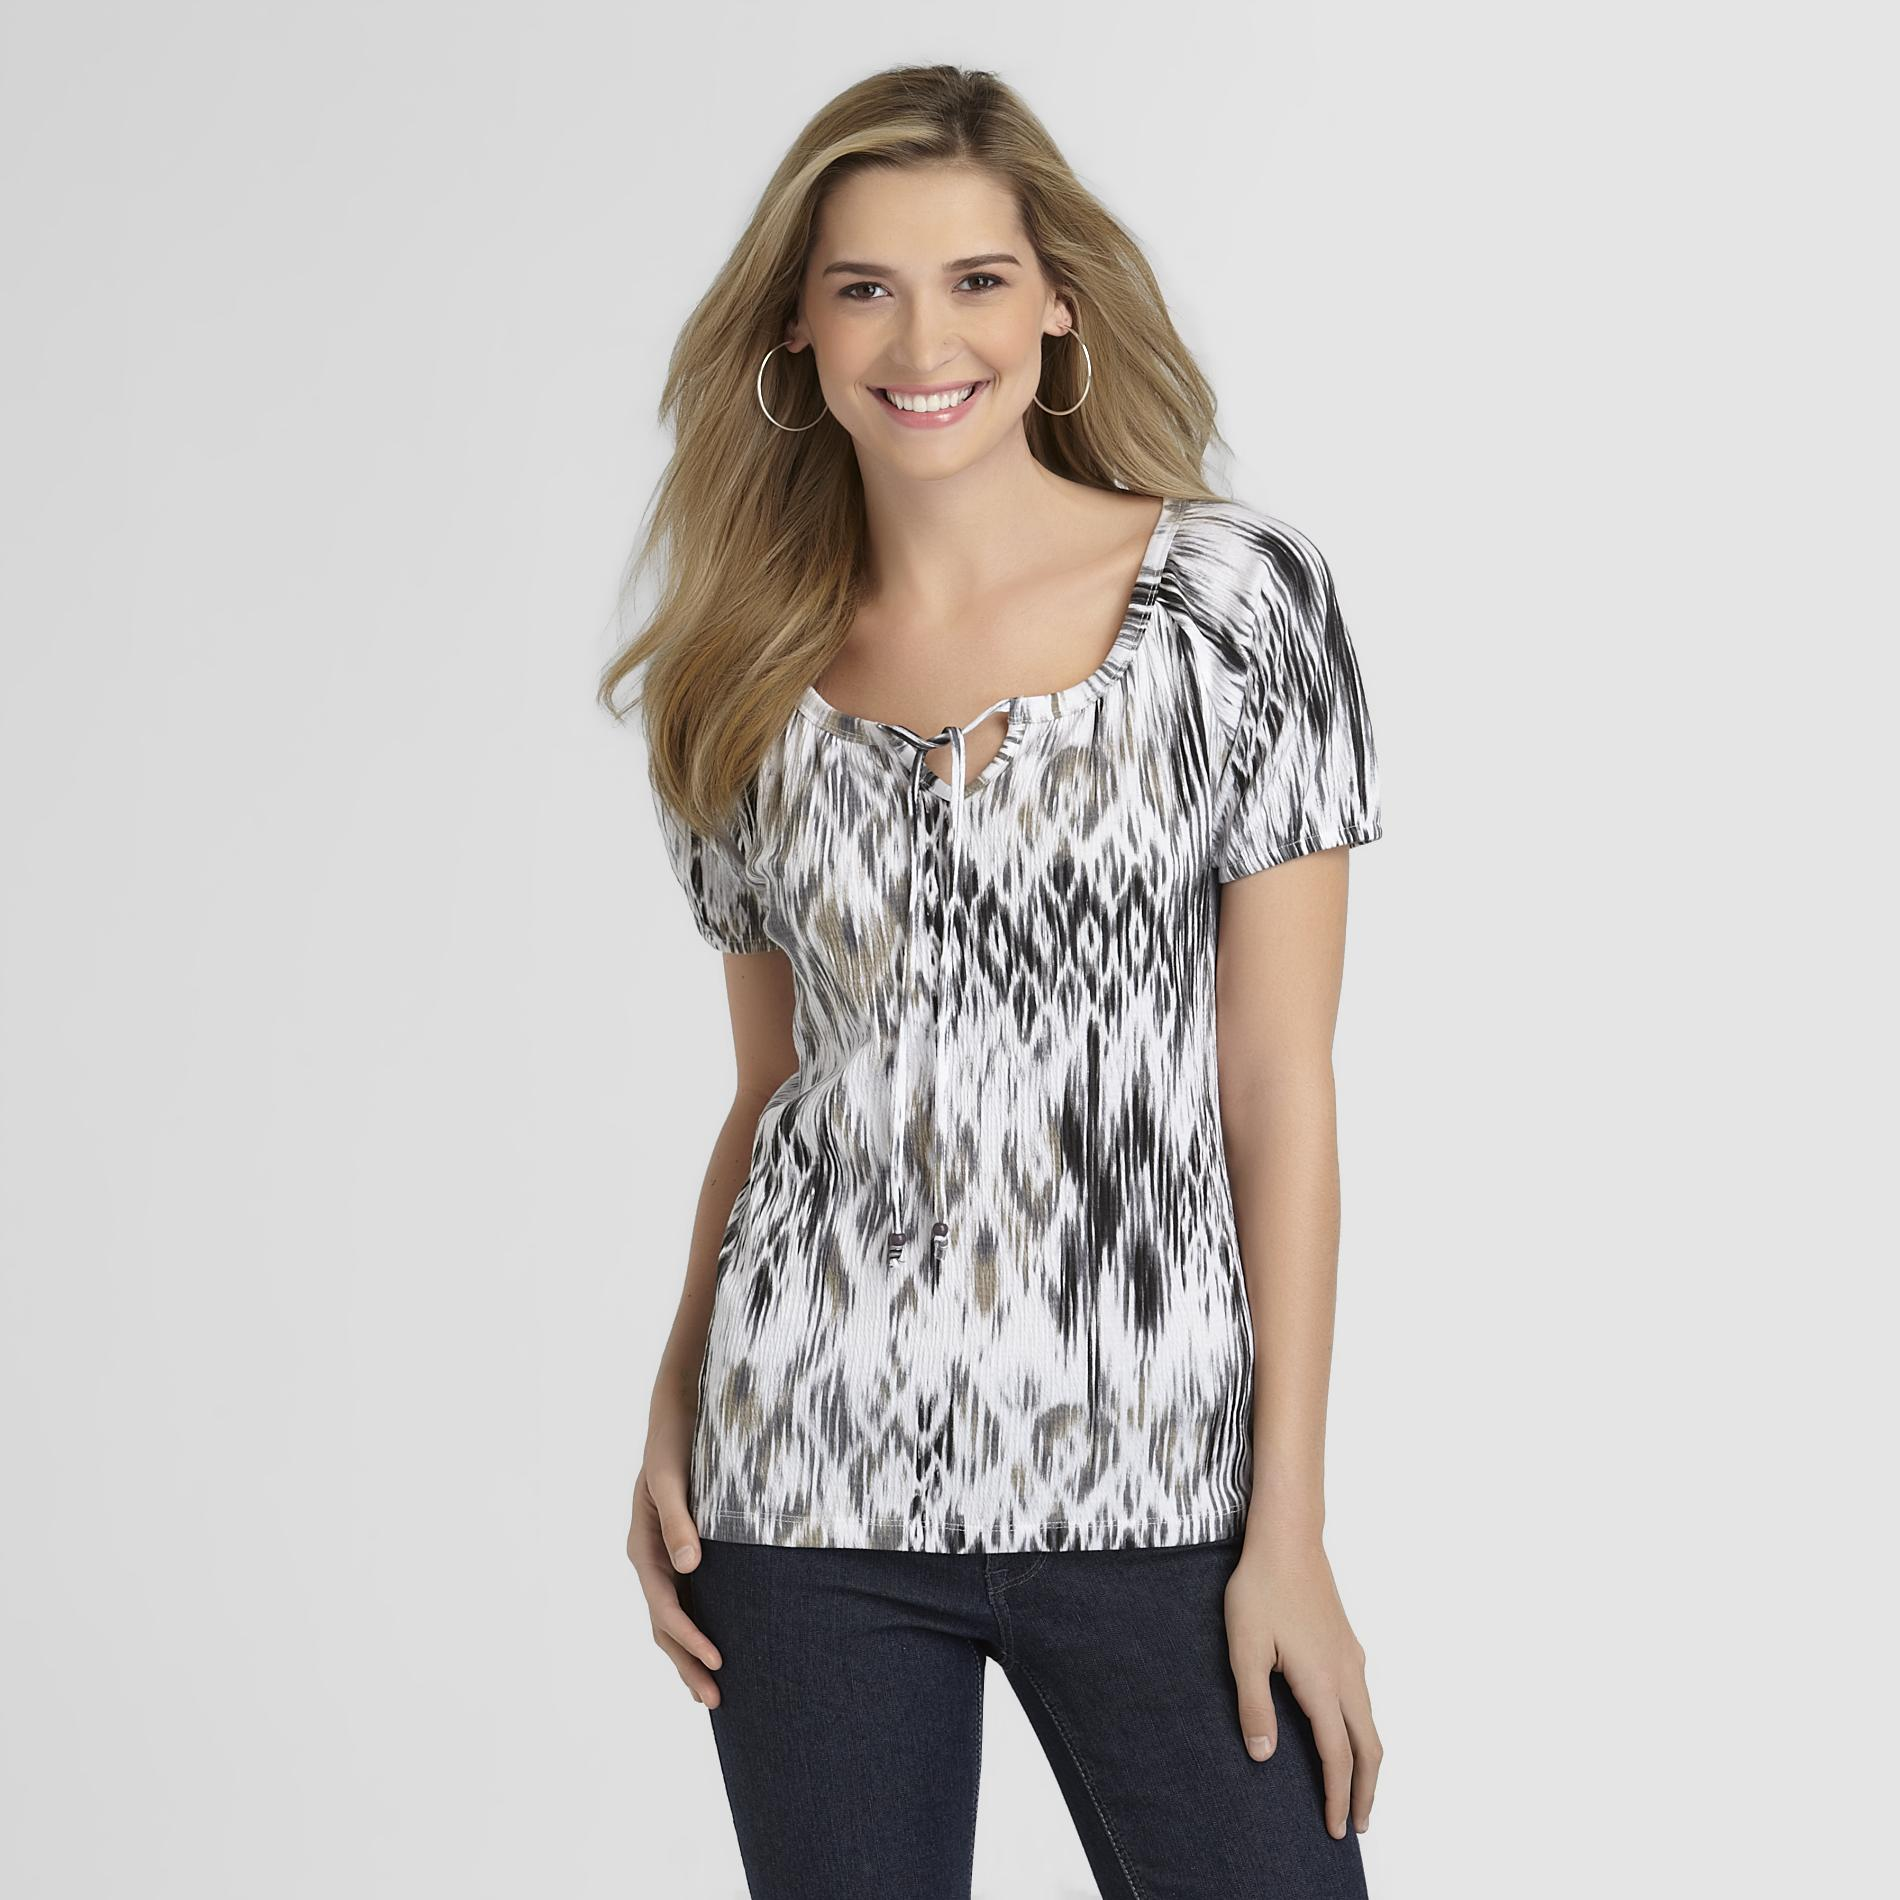 Basic Editions Women's Gauze Peasant Top - Ikat at Kmart.com